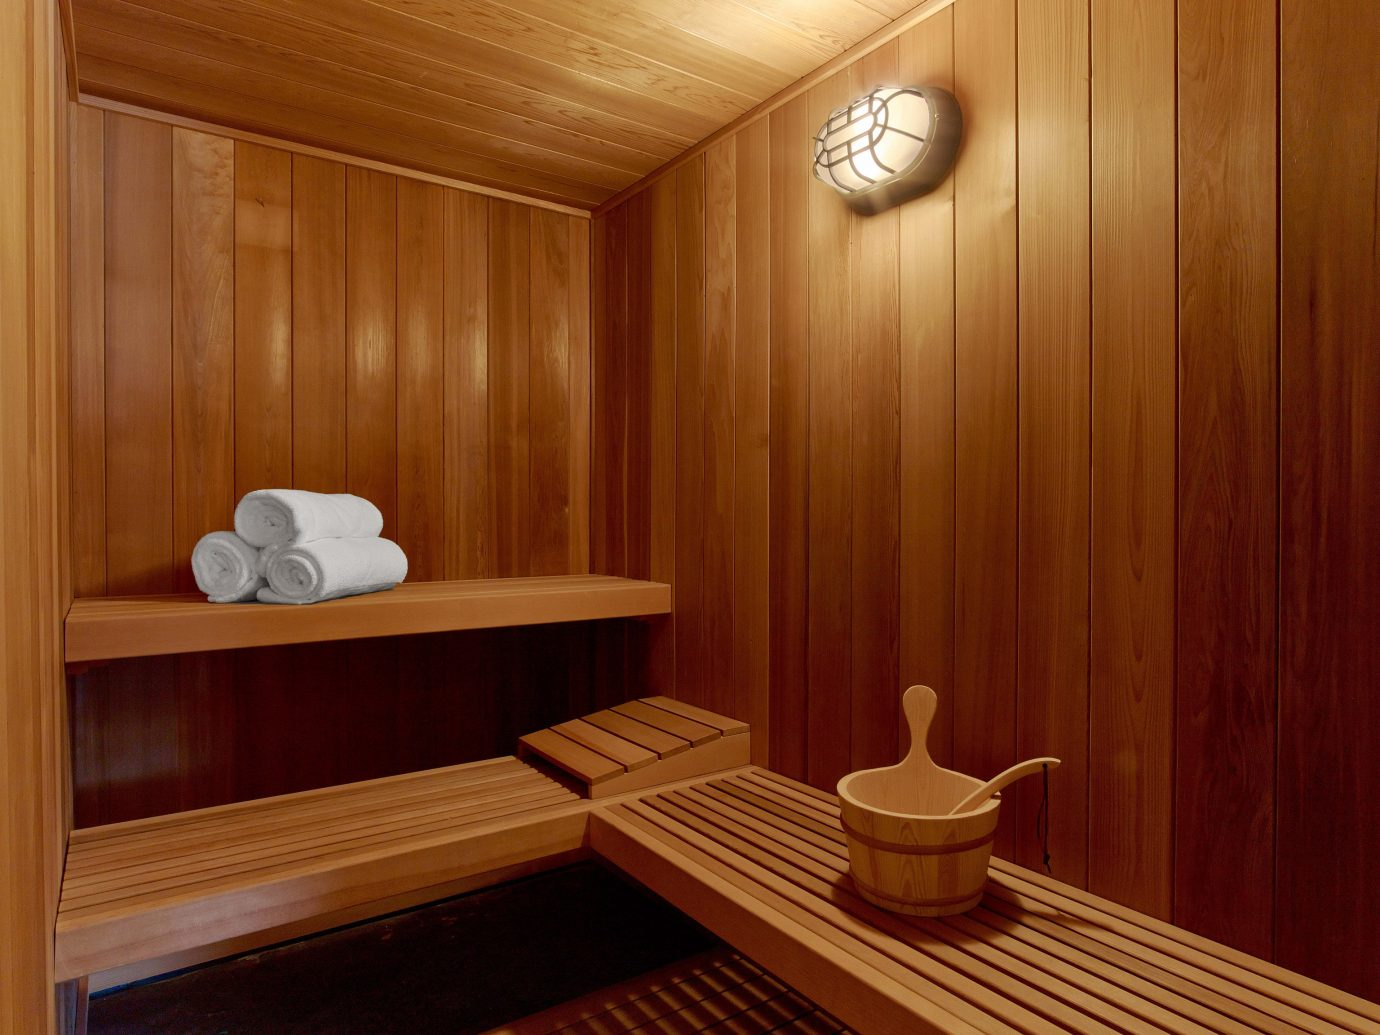 Sauna at The Nobu Villa suite at the Nobu Hotel in Las Vegas